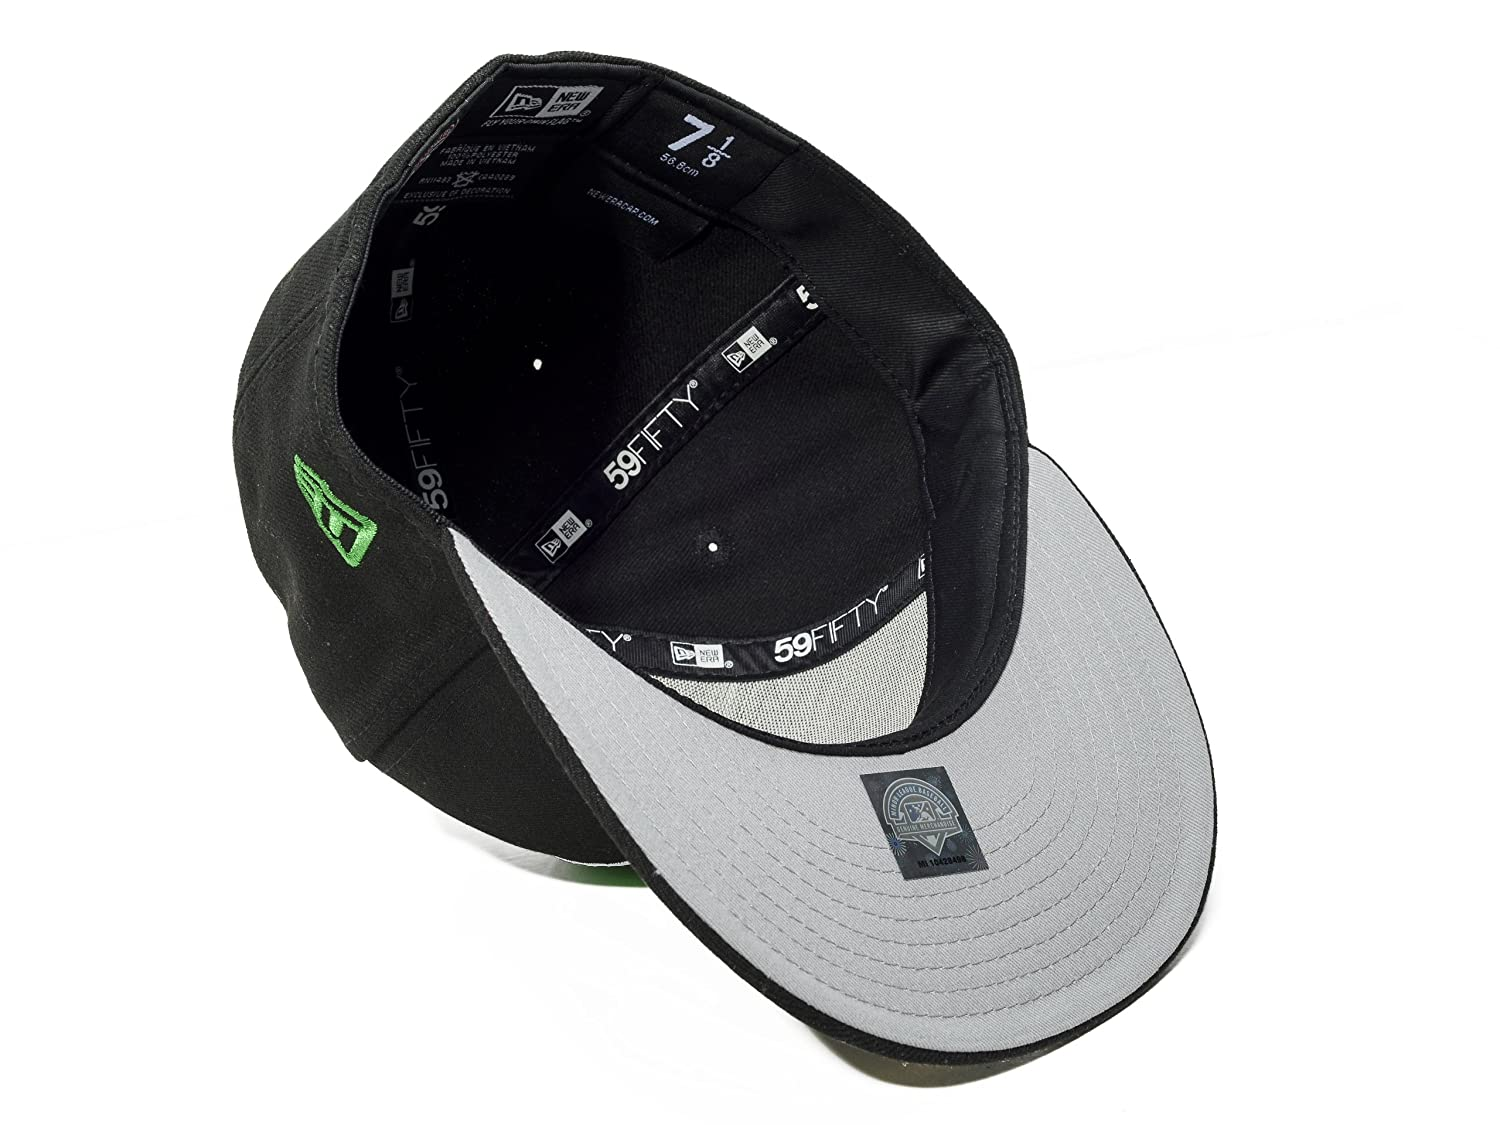 promo code 1bd33 feb0a Amazon.com   New Era 59FIFTY Dayton Dragons Black Green Fitted Cap   Sports    Outdoors